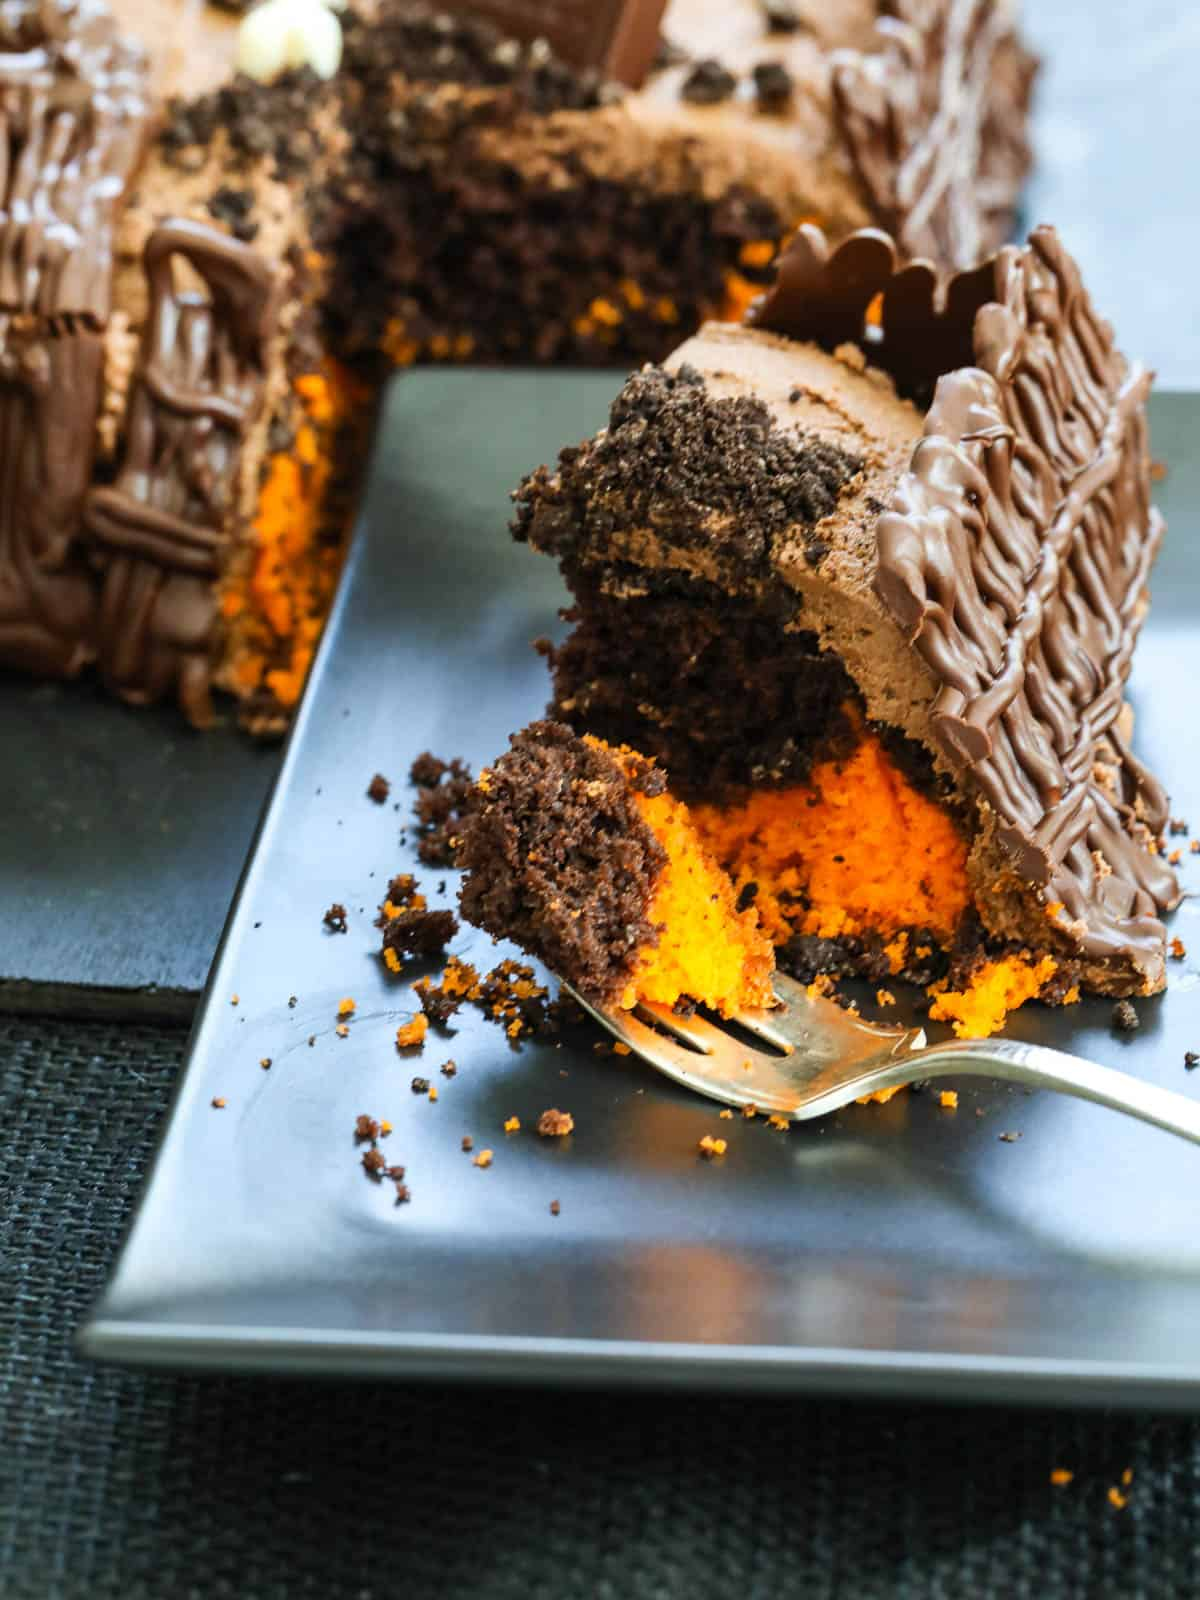 A slice of orange and chocolate Halloween cake on a black plate with a fork.